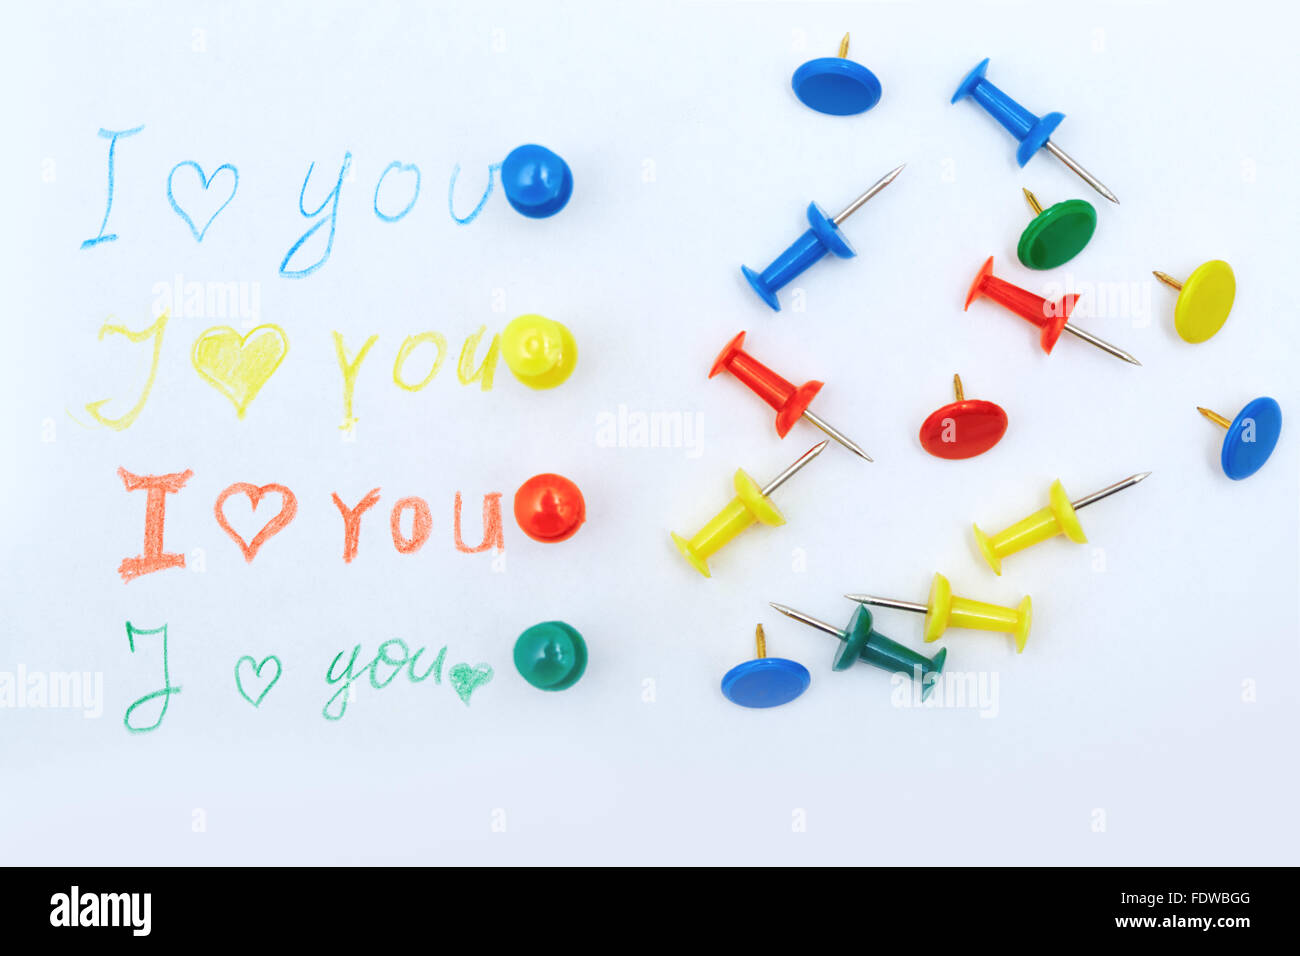 Love you letter with colorful push pins - Stock Image